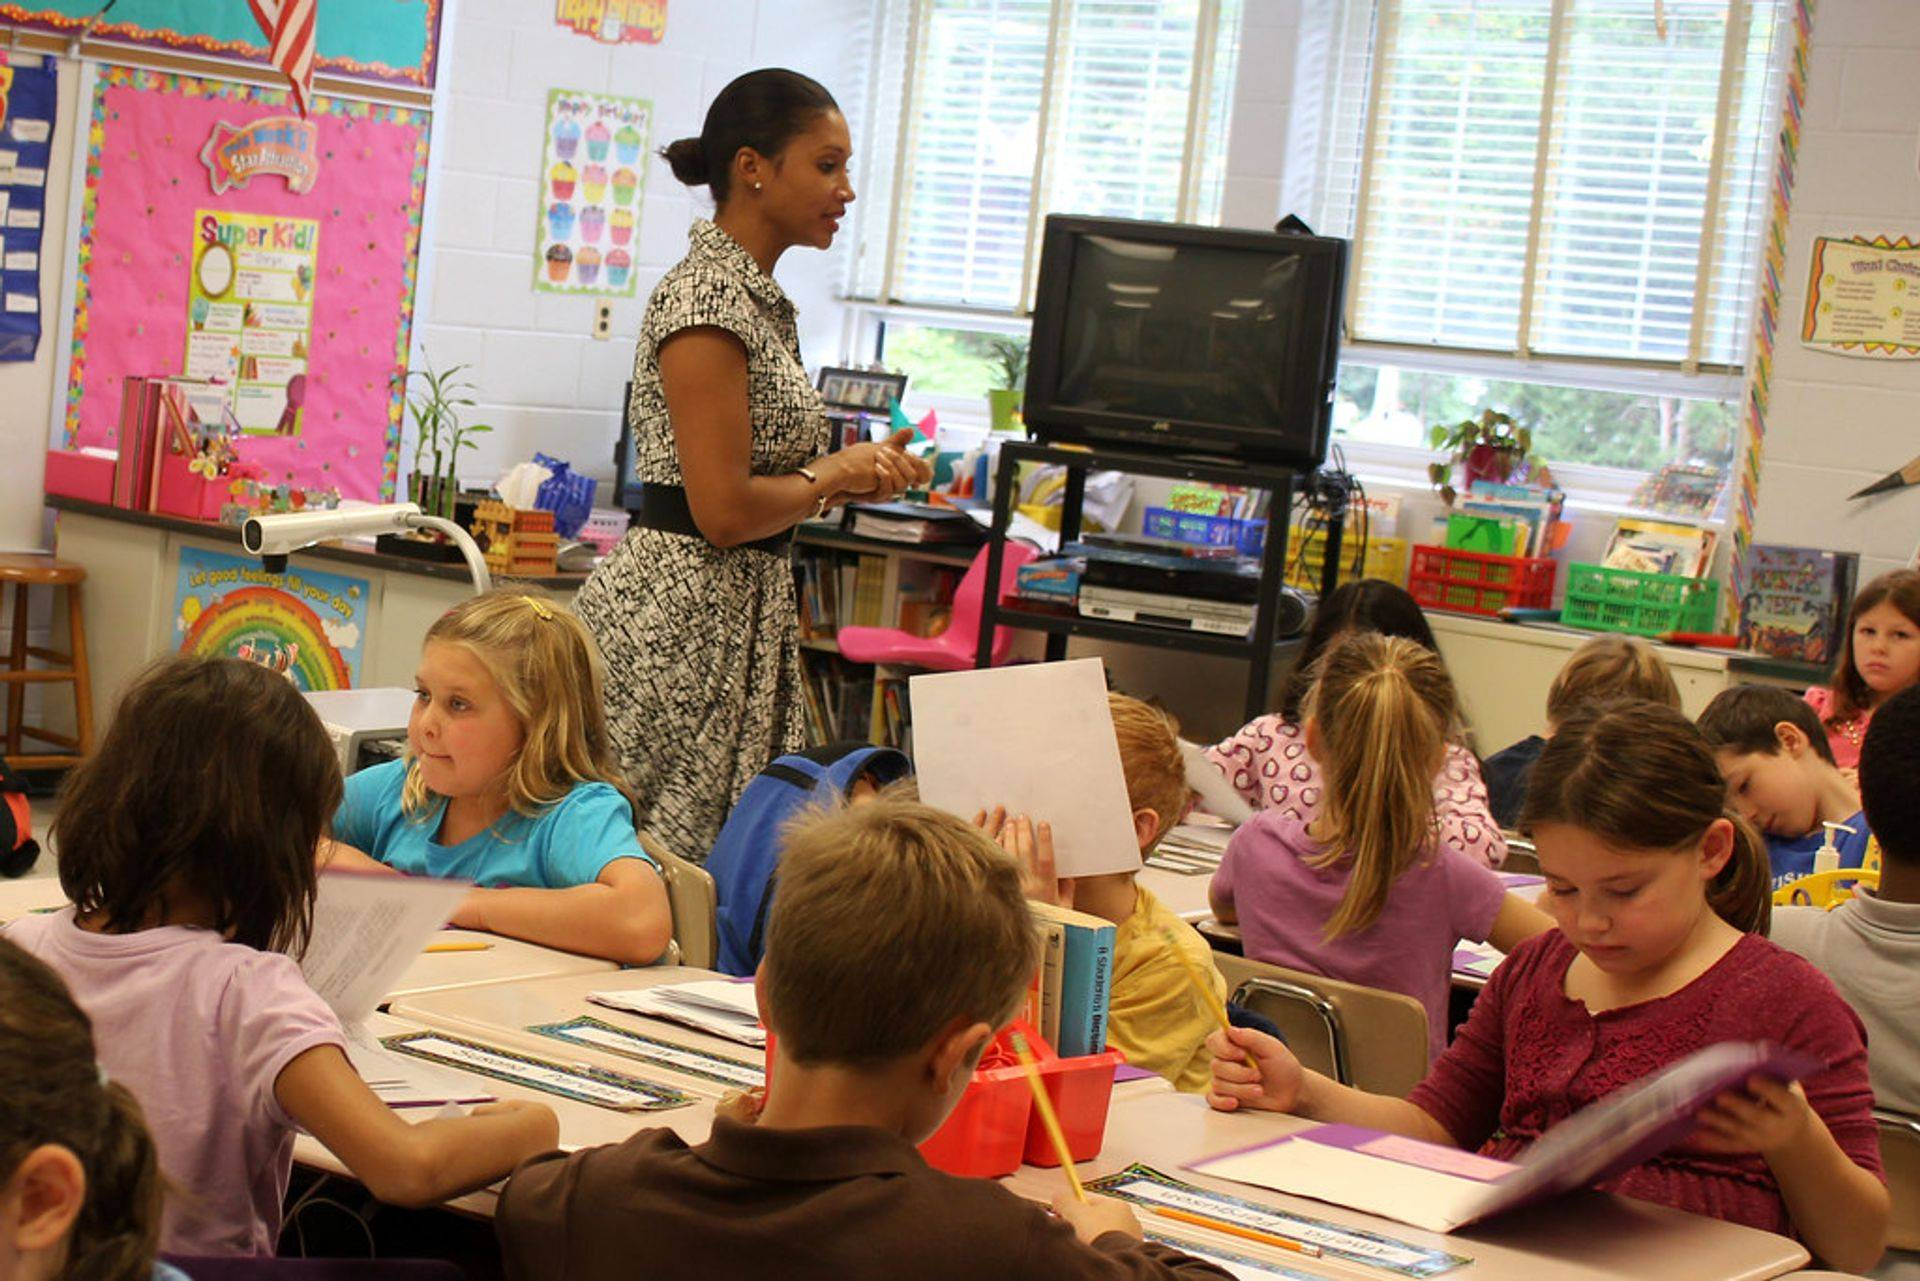 Professional Development Helps Teachers Engage Students